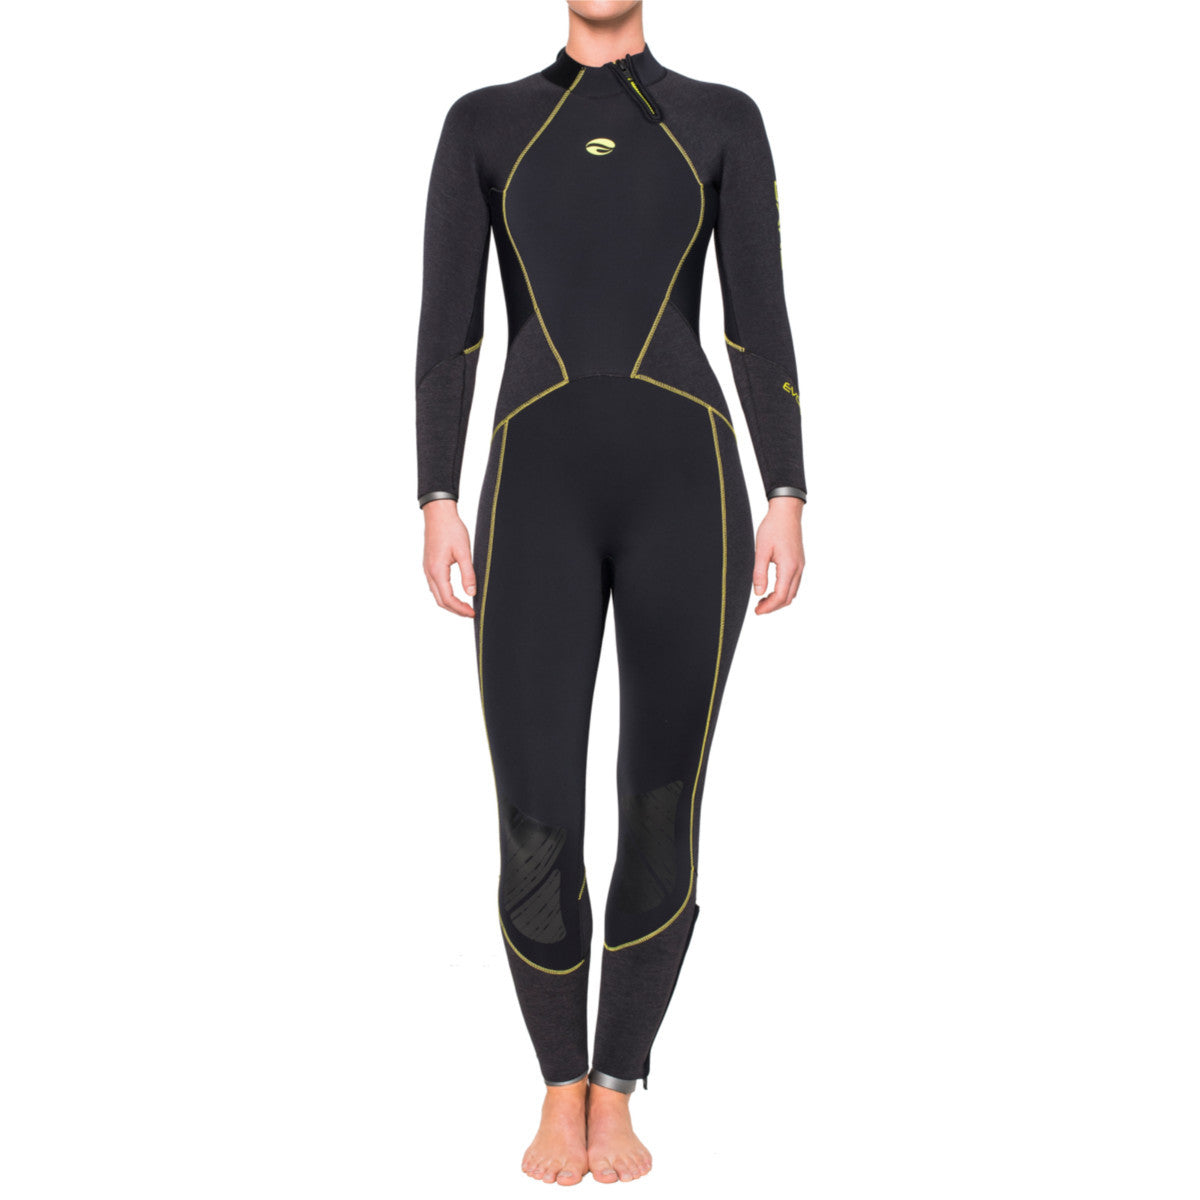 Bare Evoke 7mm Wetsuit: Womens - Oyster Diving Shop - 1